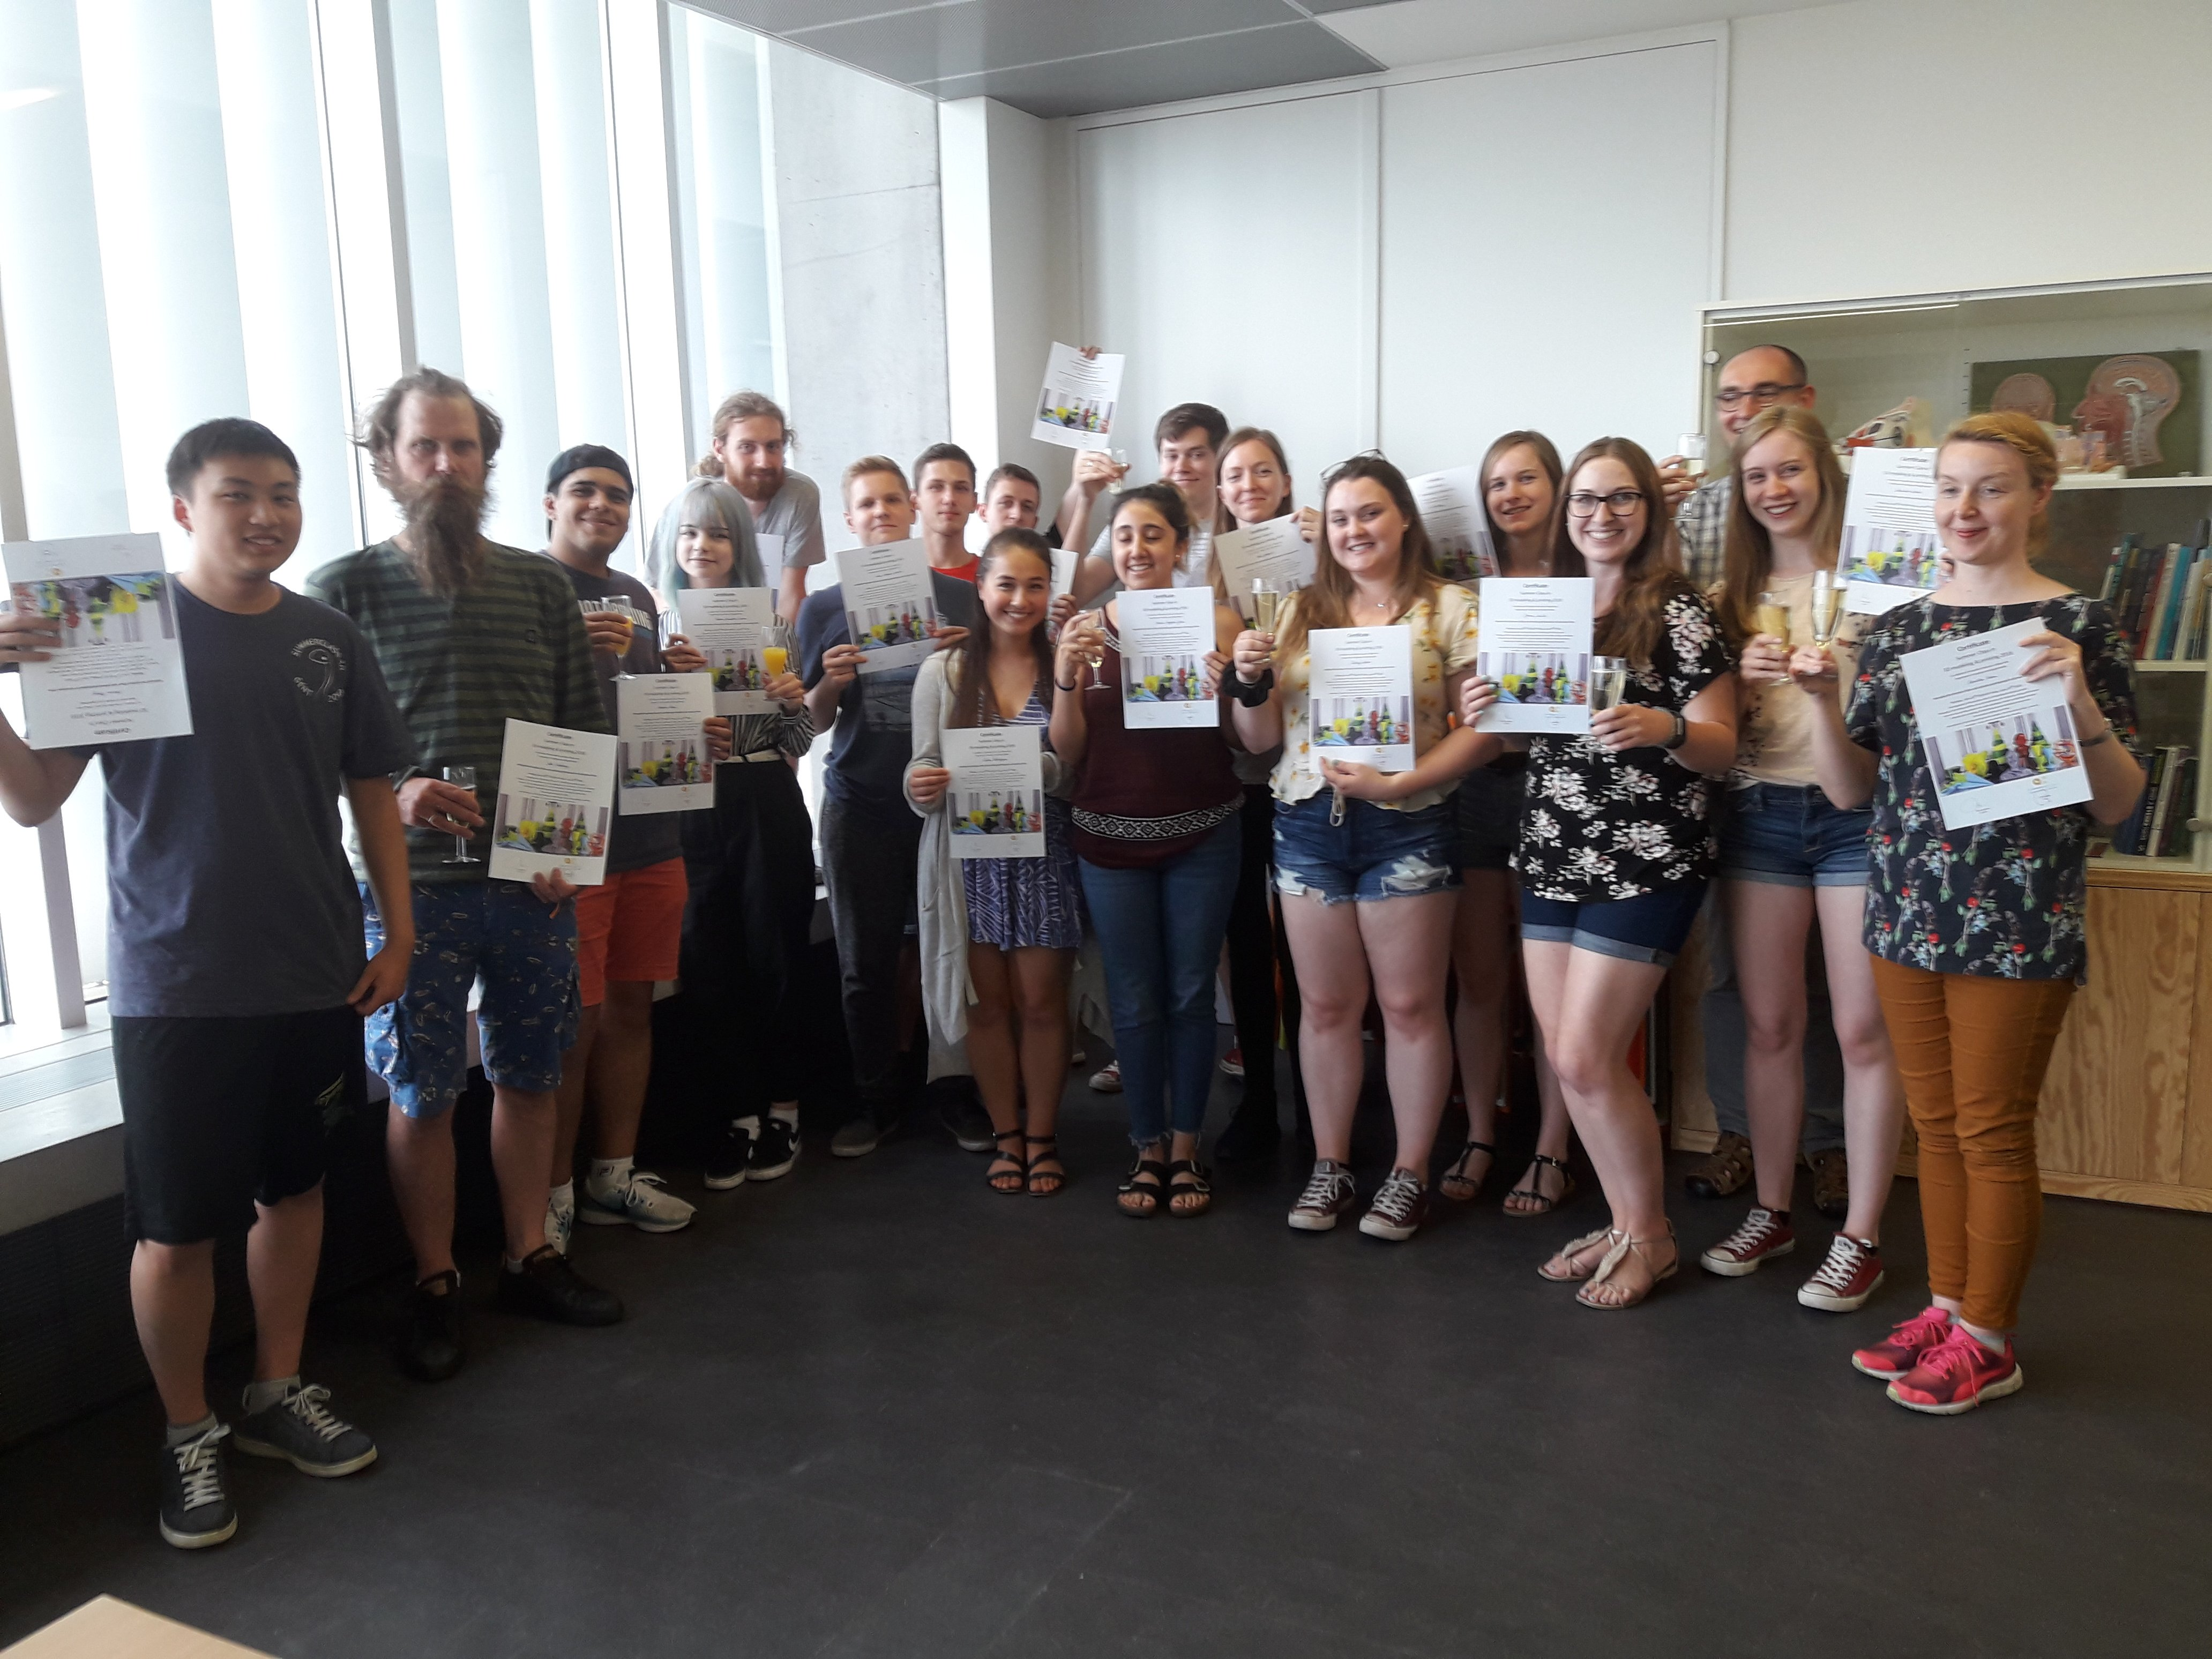 Participants receive their certificate after an intensive two weeks program - June 2018